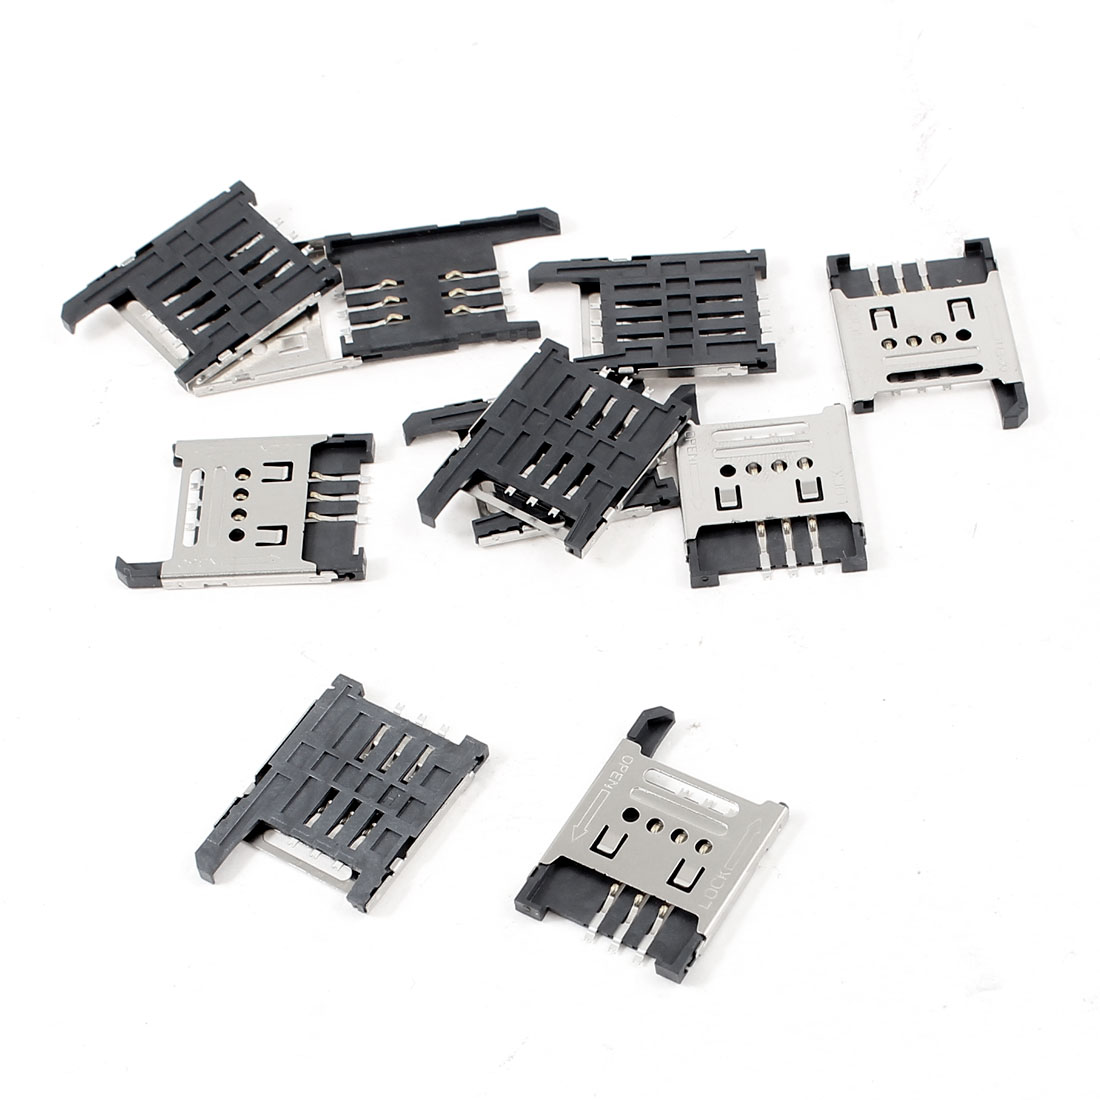 10pcs Hinged Cover 6-Pin PCB Mounting SIM Card Socket for Cell Phone